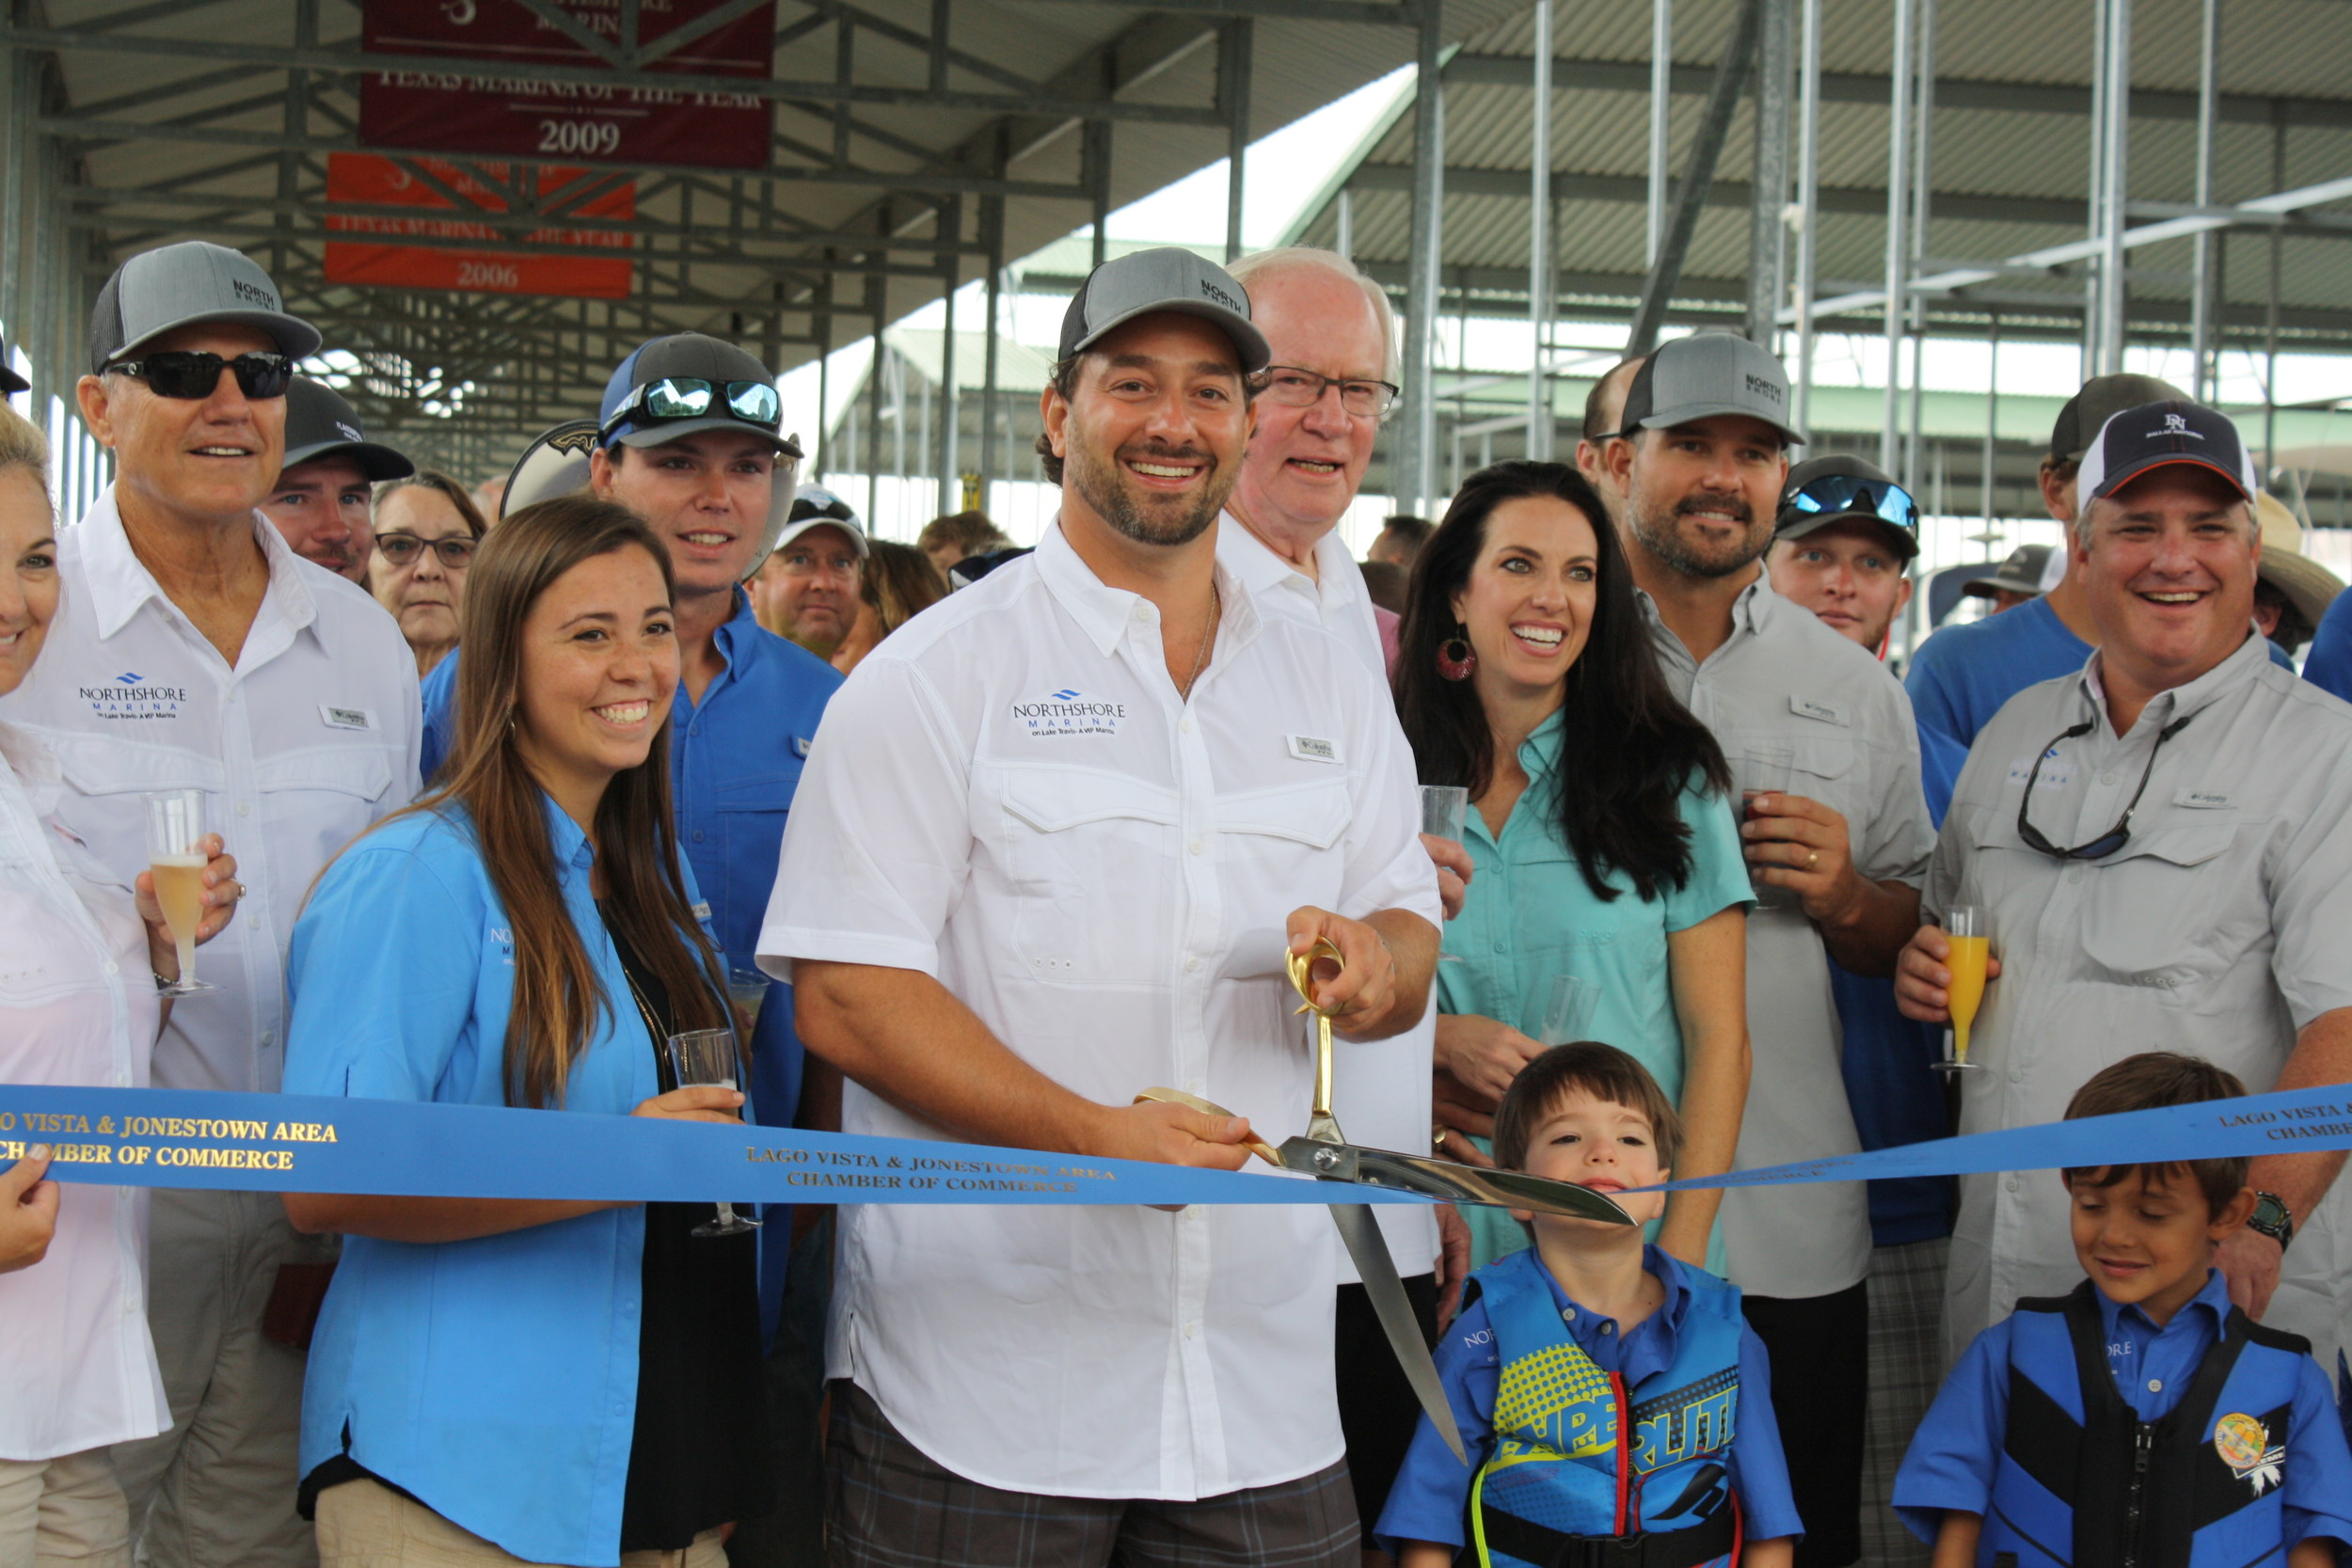 Austin Cameron, owner of NorthShore Marina, cuts the ribbon at the celebration for the marina's expansion of 71 new boat slips, Saturday, June 24.